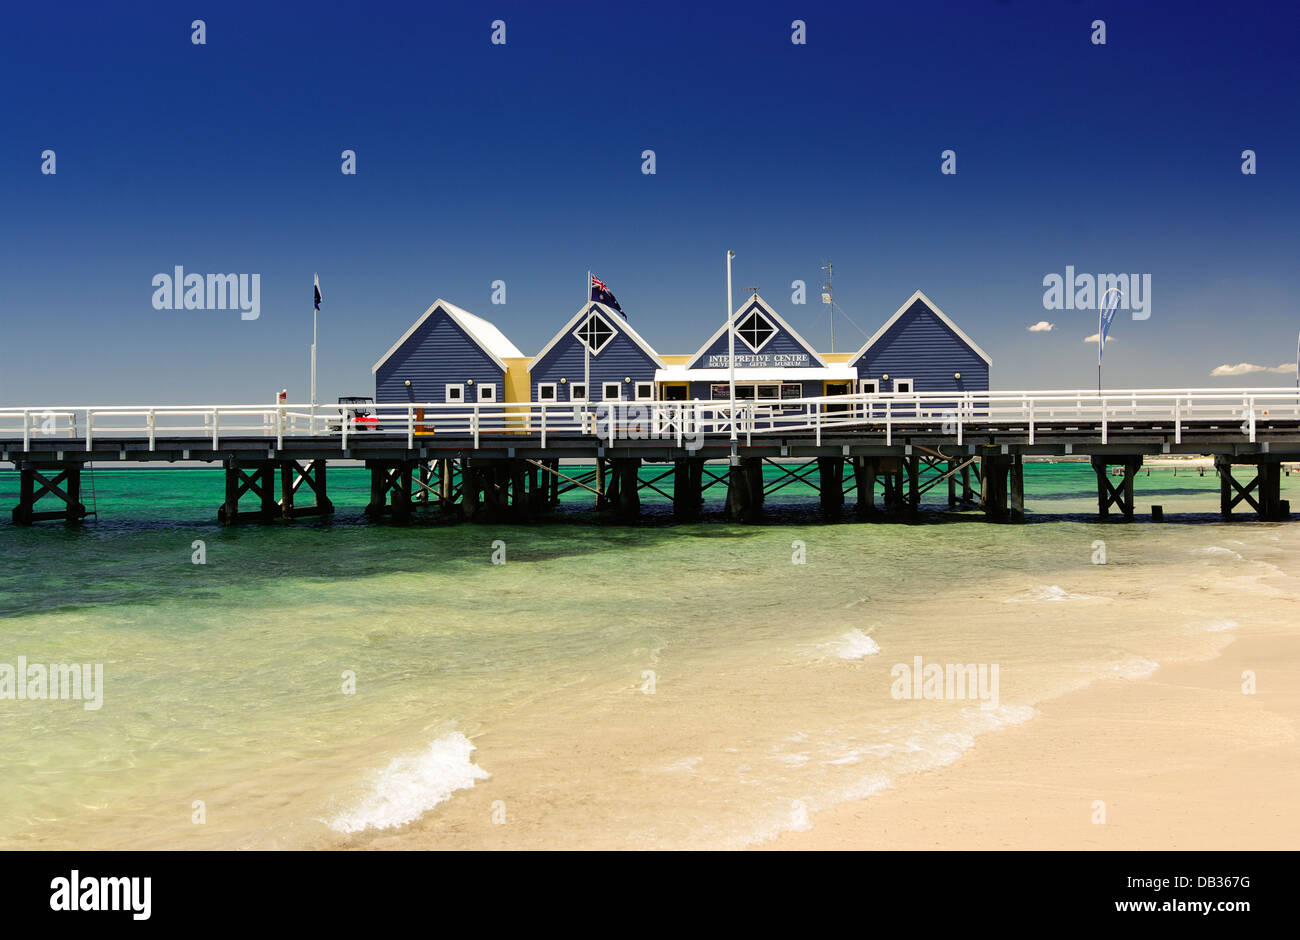 The buildings on Busselton Pier, Busselton, Western Australia Stock Photo